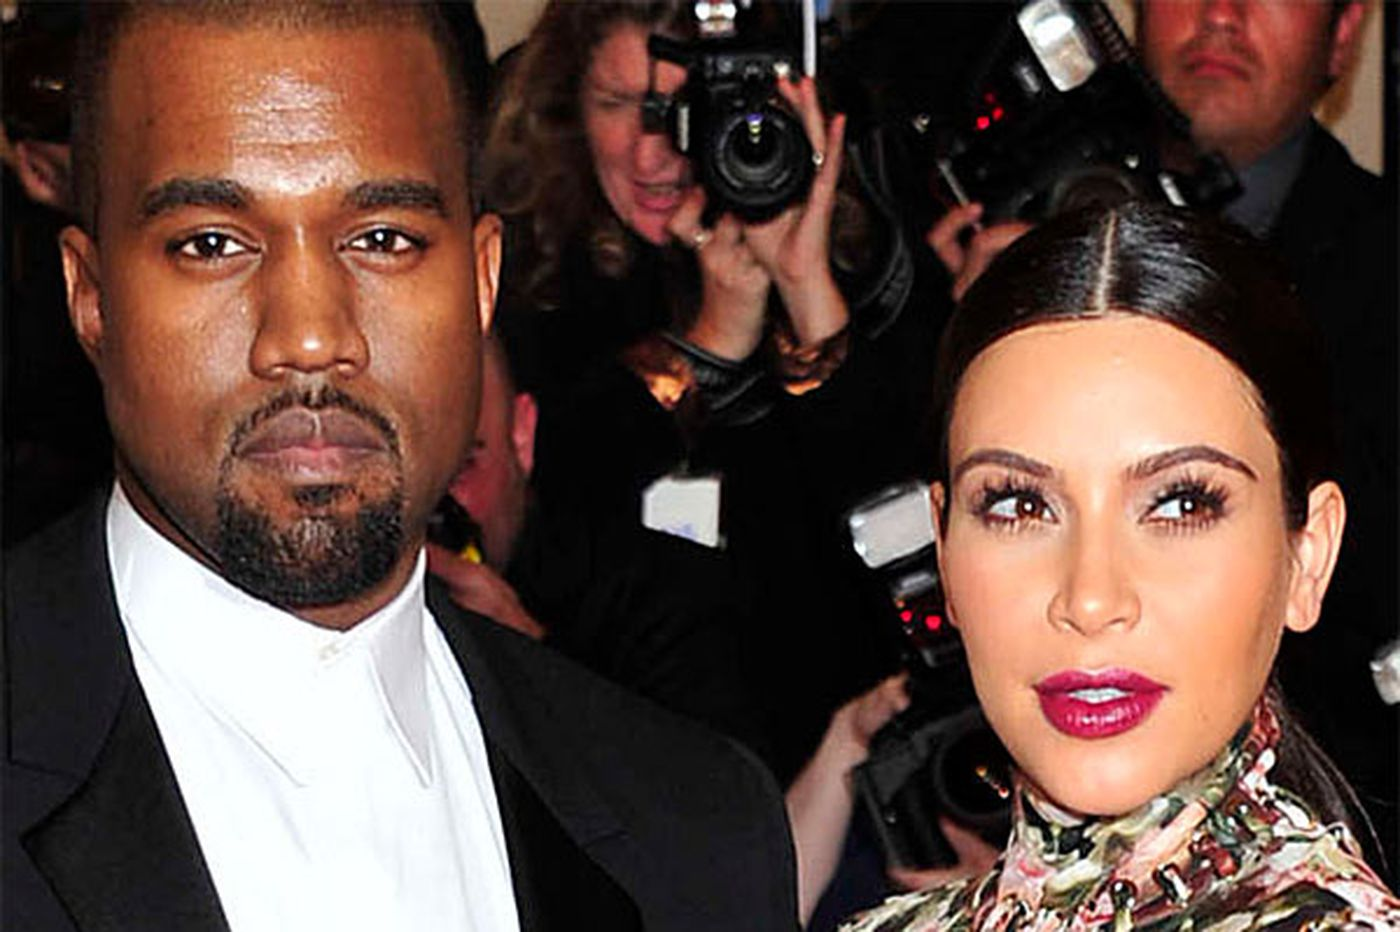 Sideshow: Kimye circus wedding headed for a French faux chateau